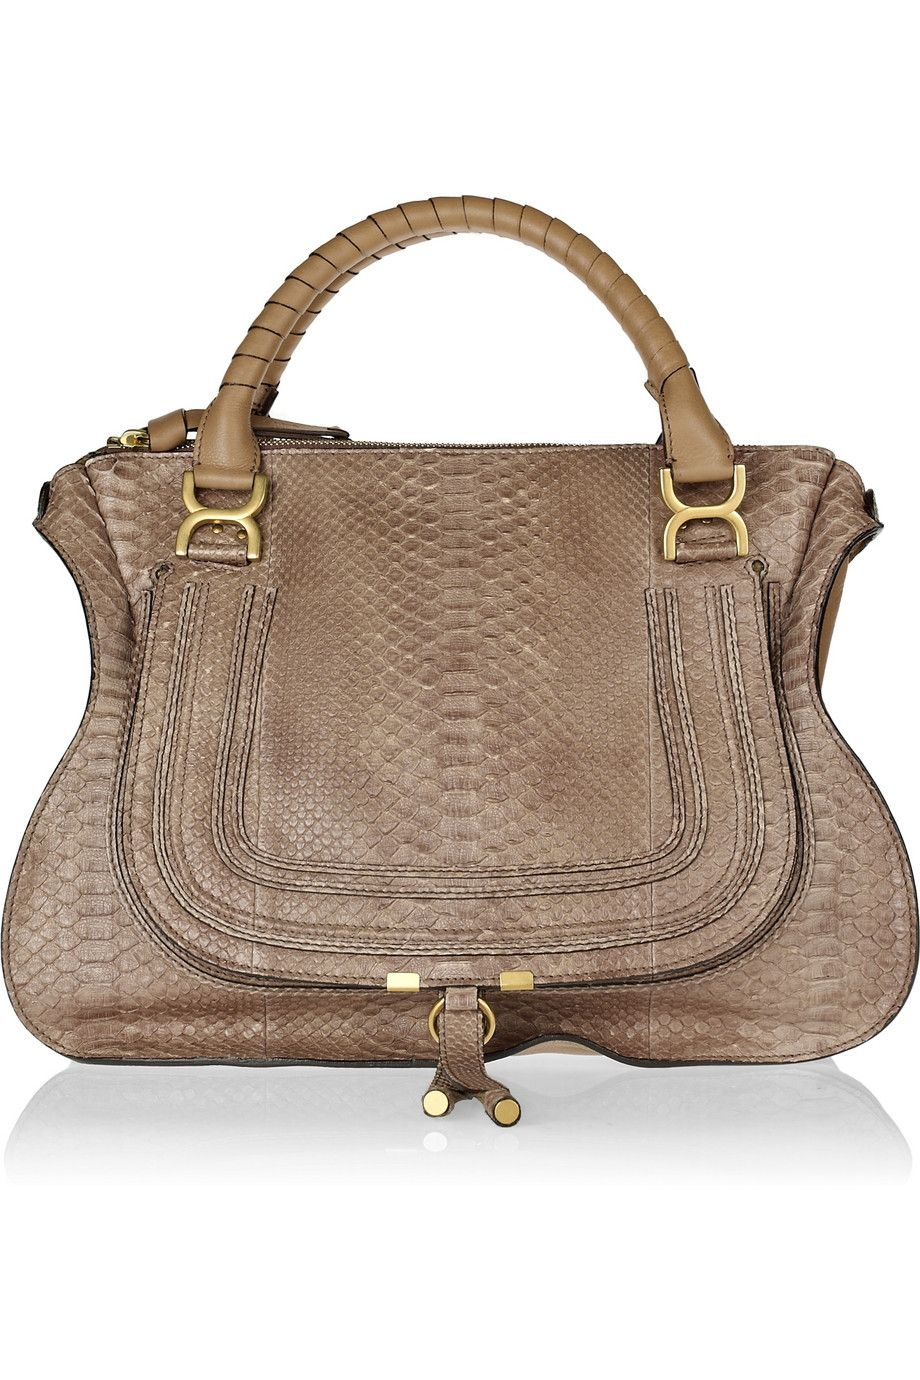 6b0342a2f5b3 Chloe Marcie Large python and leather tote - gorgeous! Named my dog after  the Chloe Paddington.